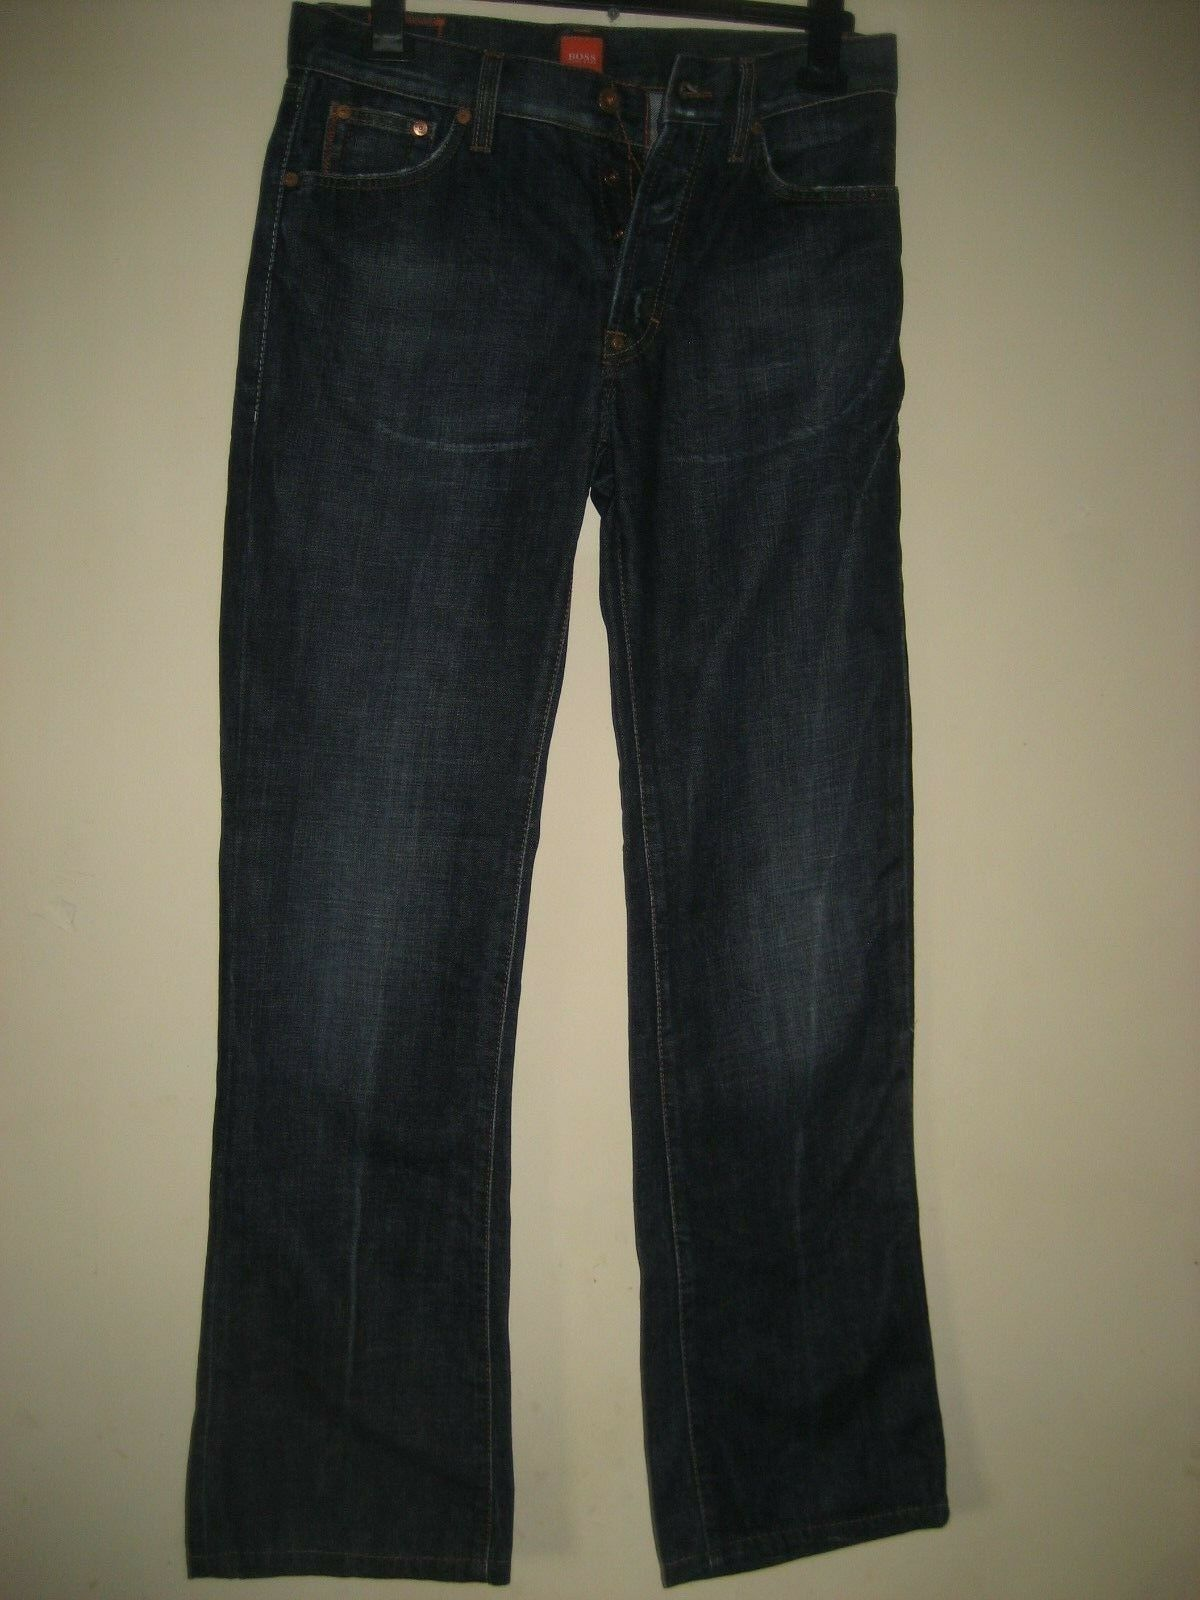 SS 28)  MENS blueE HUGO BOSS STRAIGHTJEANS WAIST 30  LEG 34  BUTTON  FLY